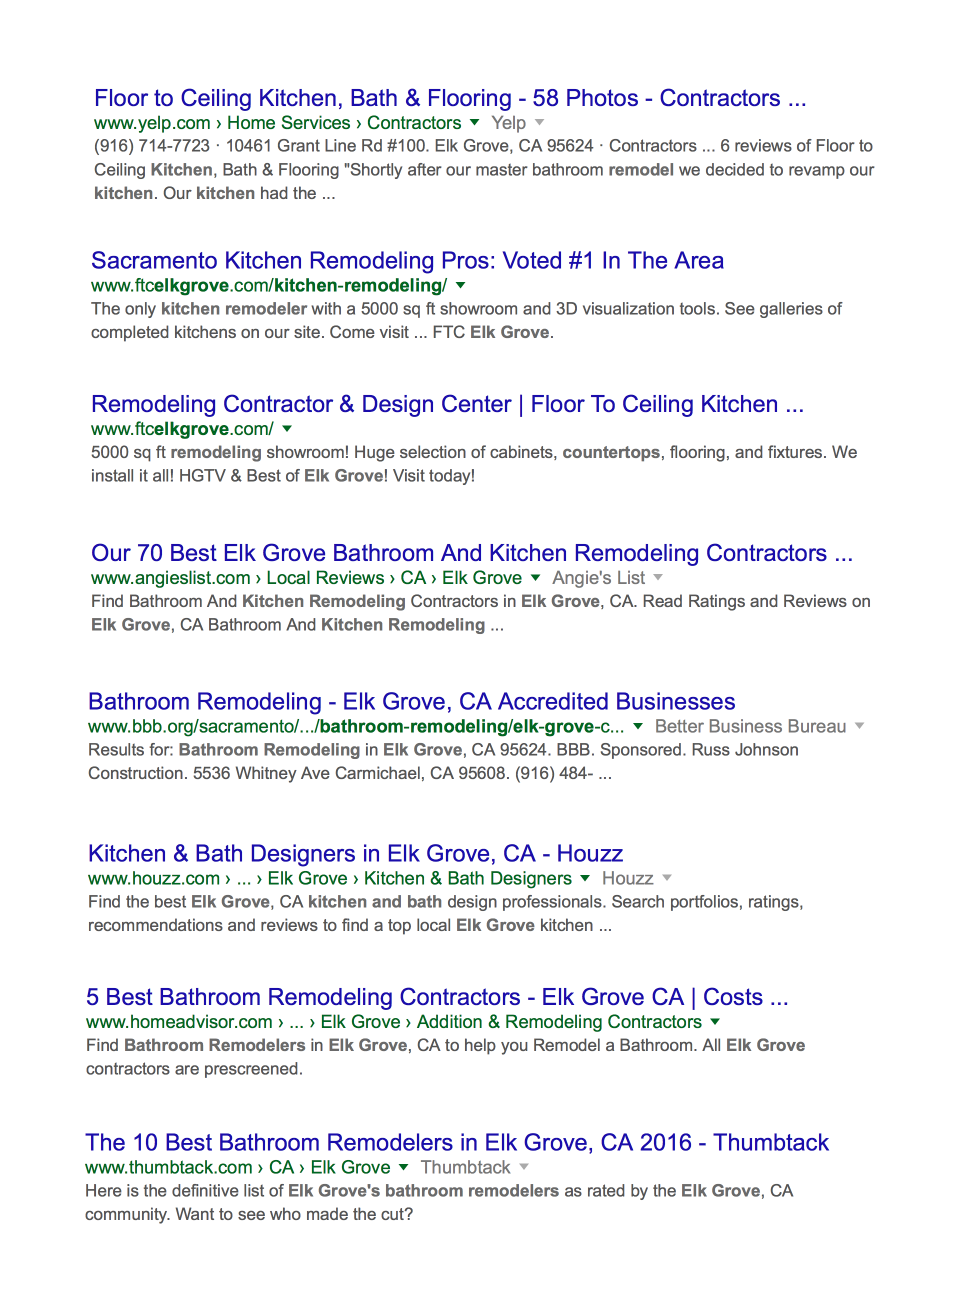 SEO Screen Grab